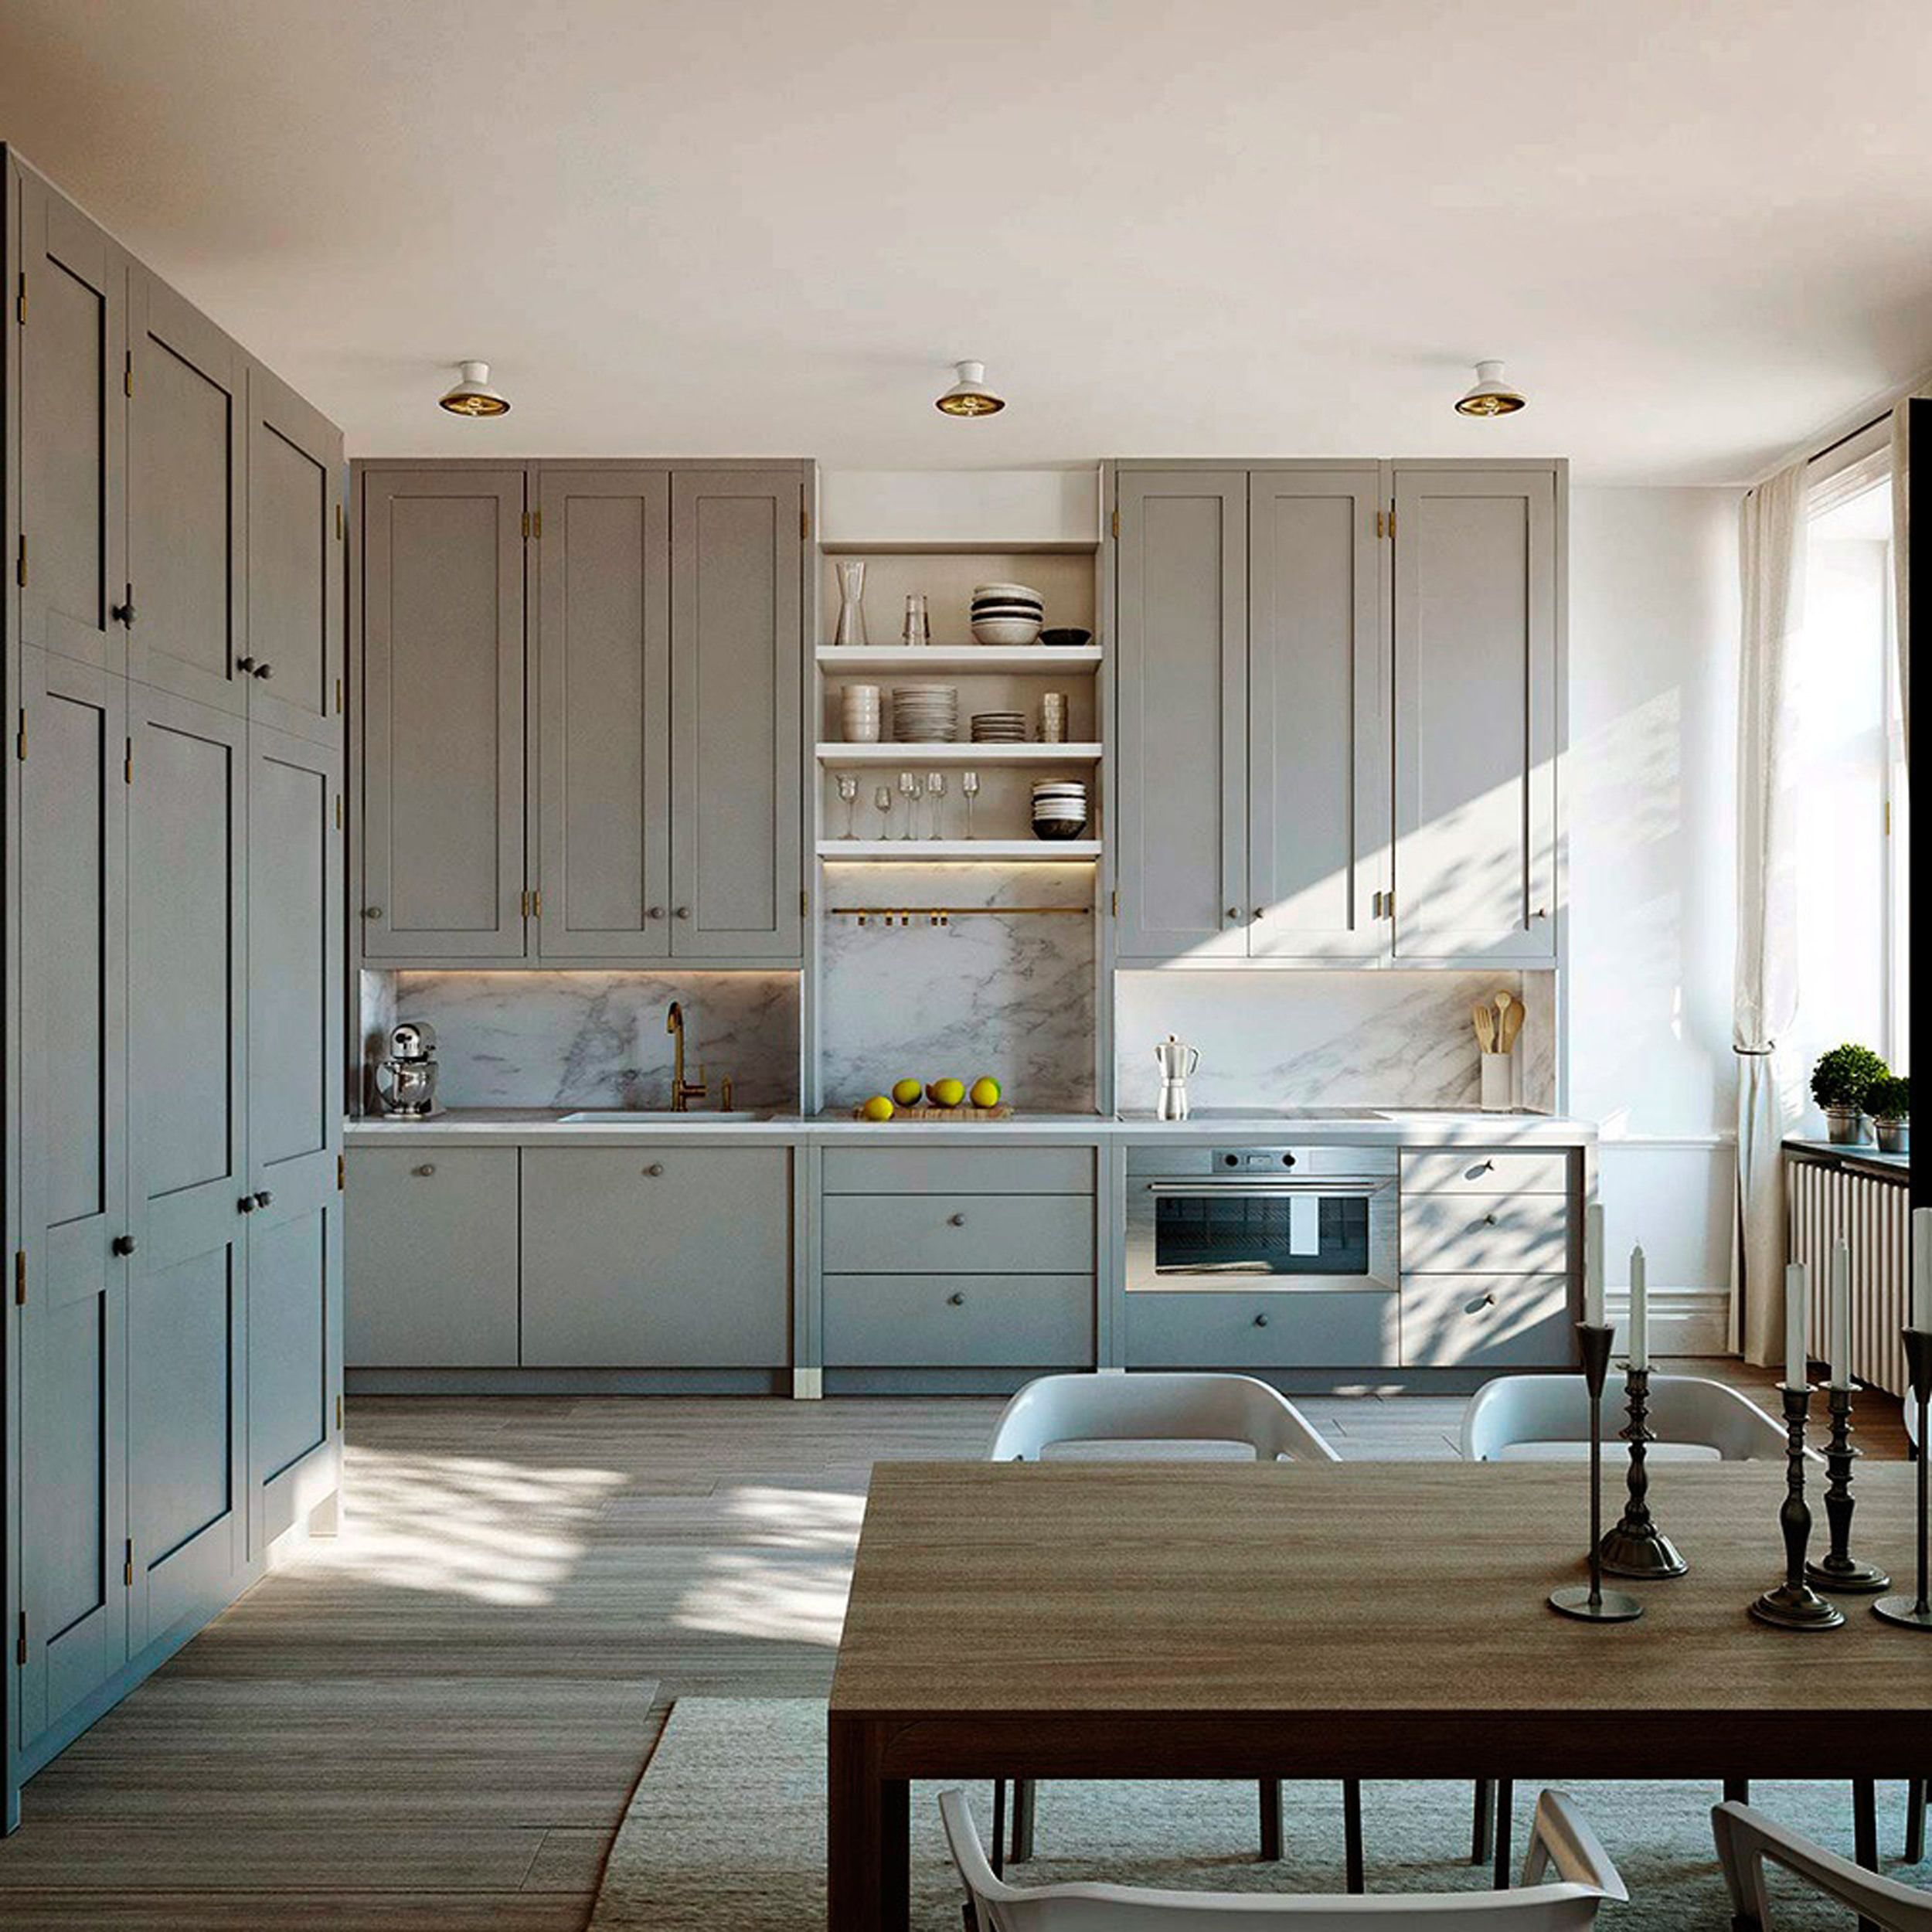 How We Re Designing Our Kitchen Thoughts On Cabinet Function Swedish Kitchen Home Home Kitchens